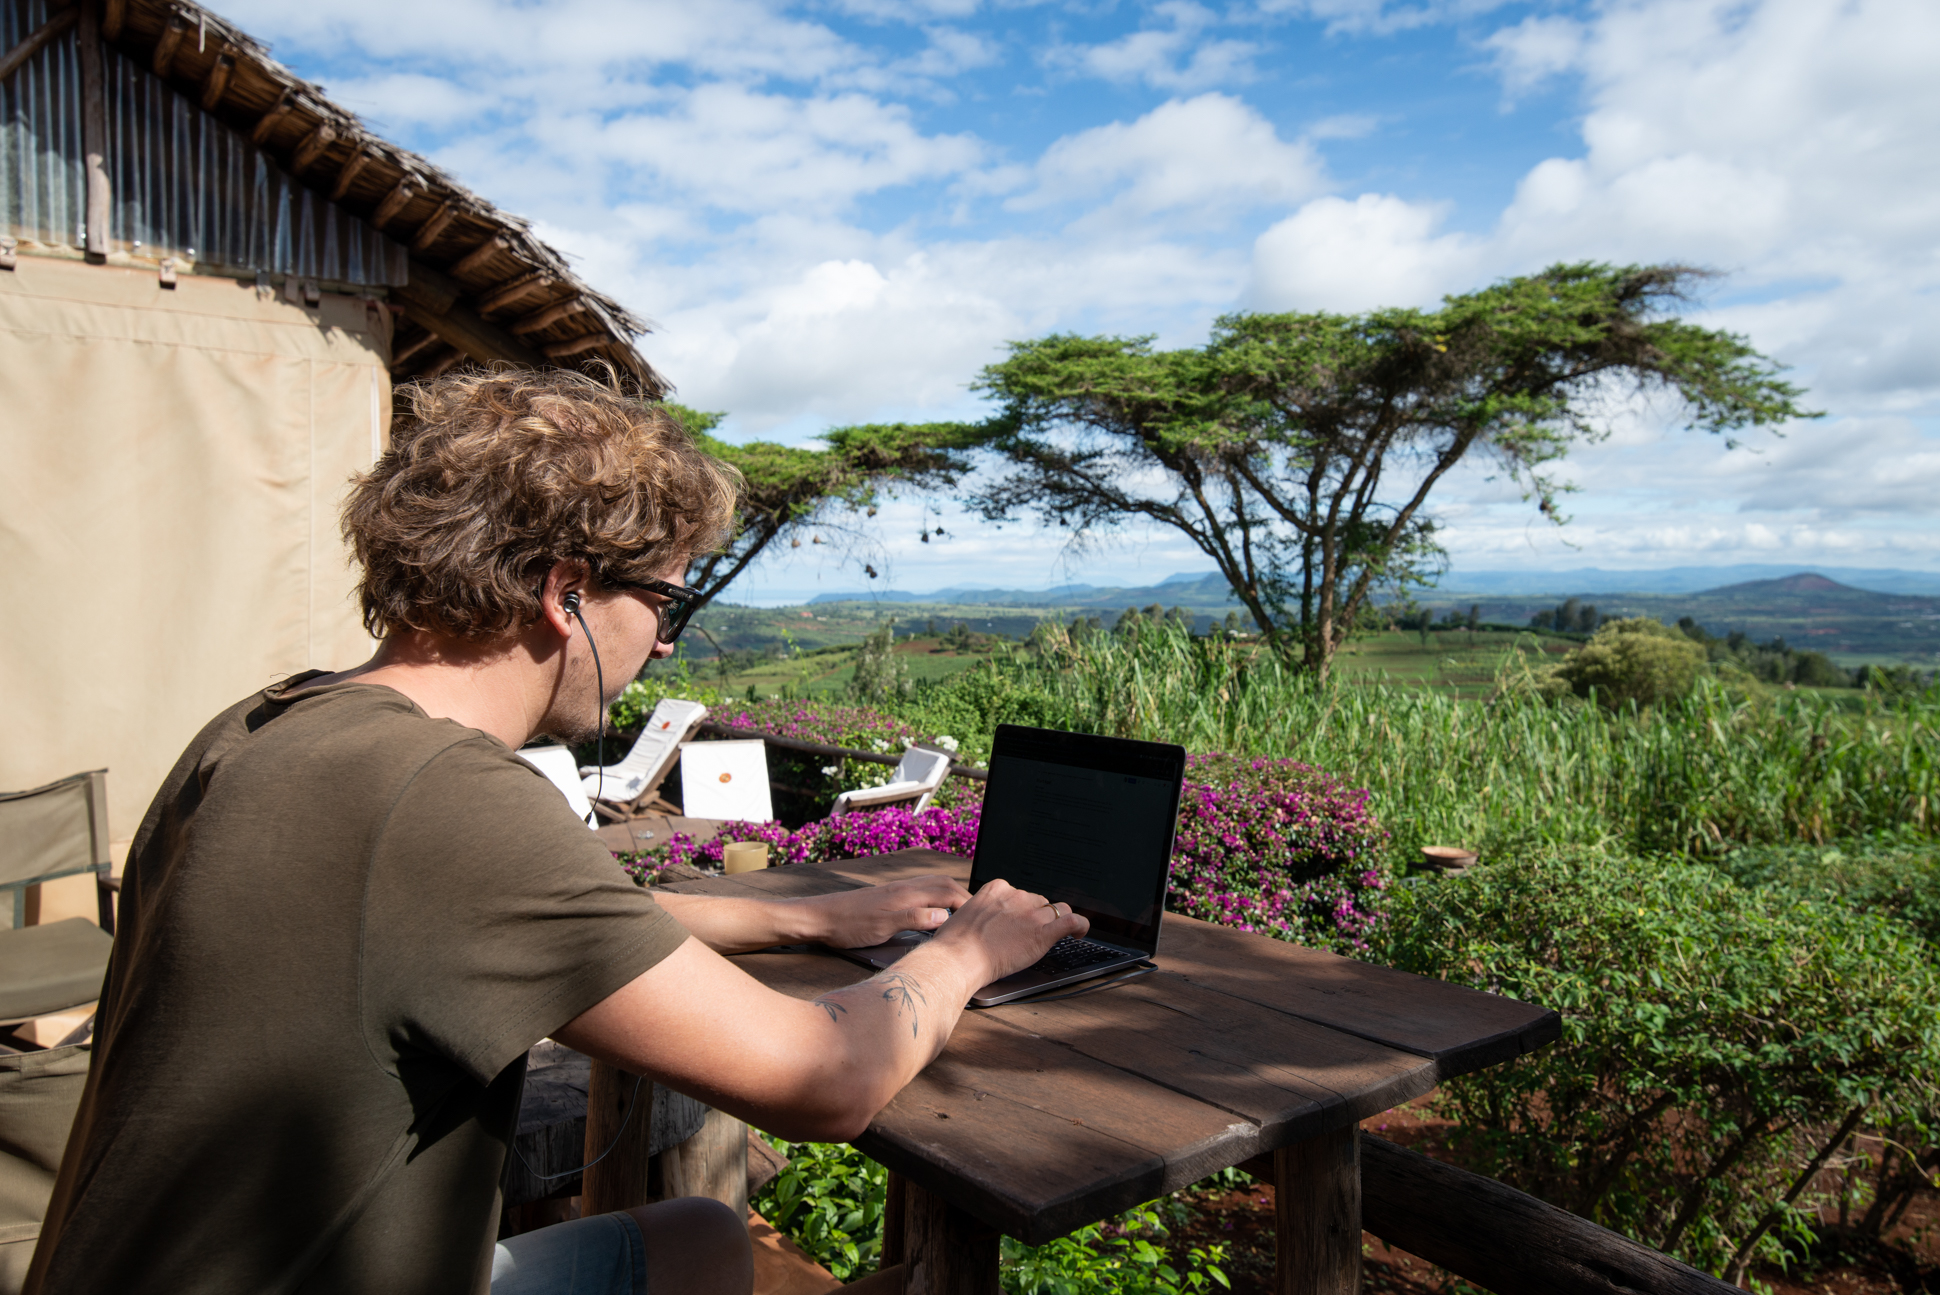 Digital nomads at Rhotia valley in Tanzania. Great view with bleu sky, white clouds, green trees and hills.